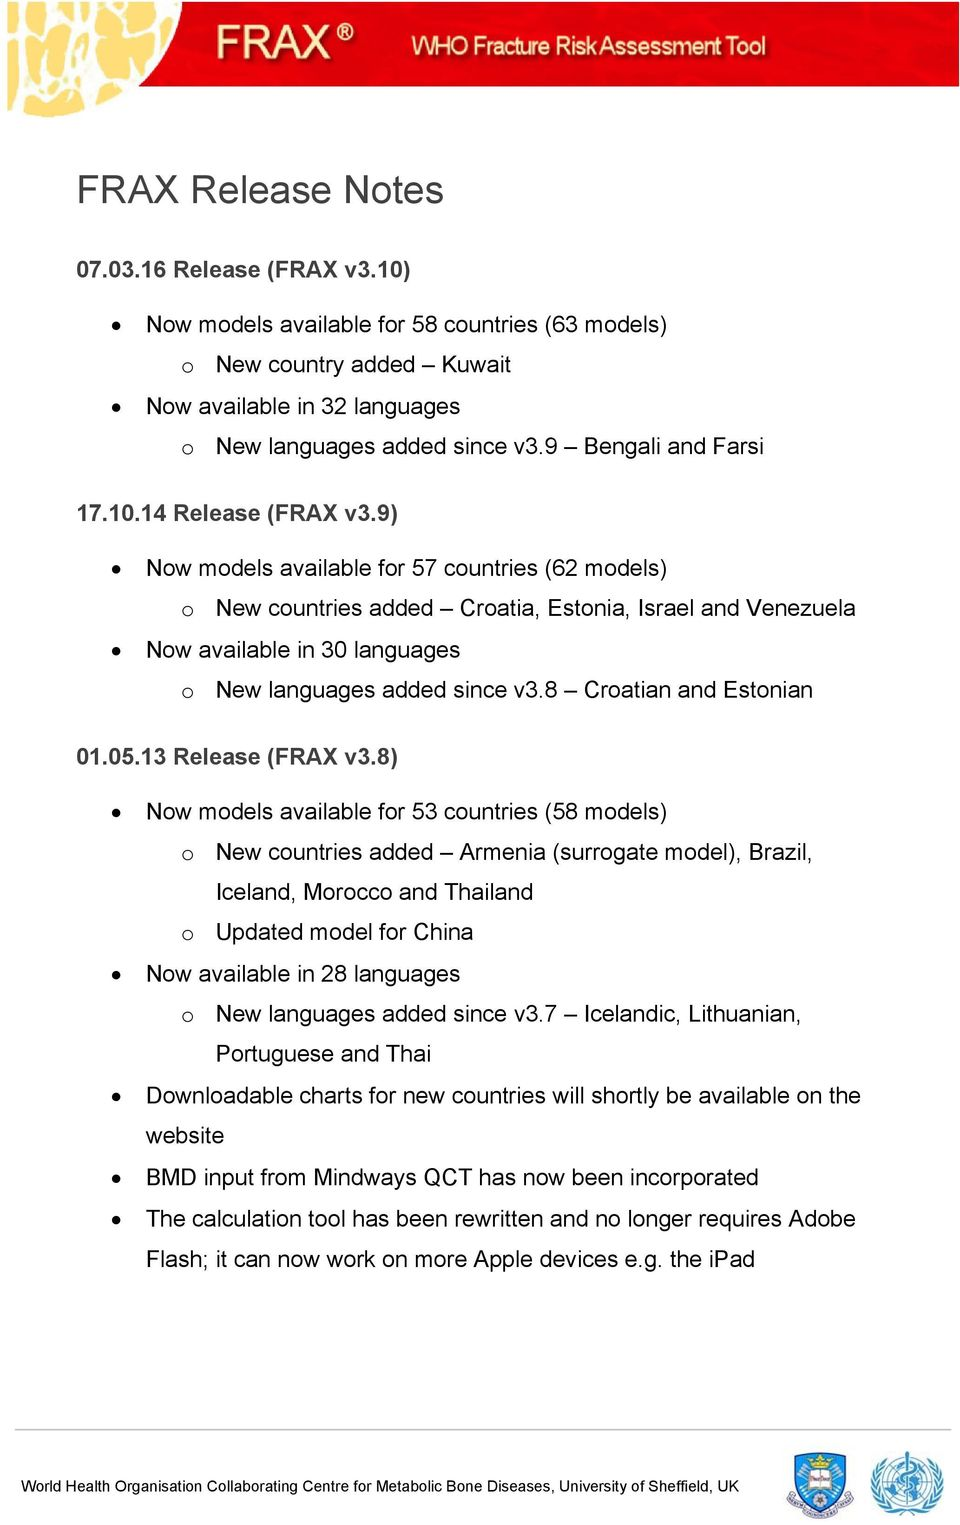 9) Now models available for 57 countries (62 models) o New countries added Croatia, Estonia, Israel and Venezuela Now available in 30 languages o New languages added since v3.